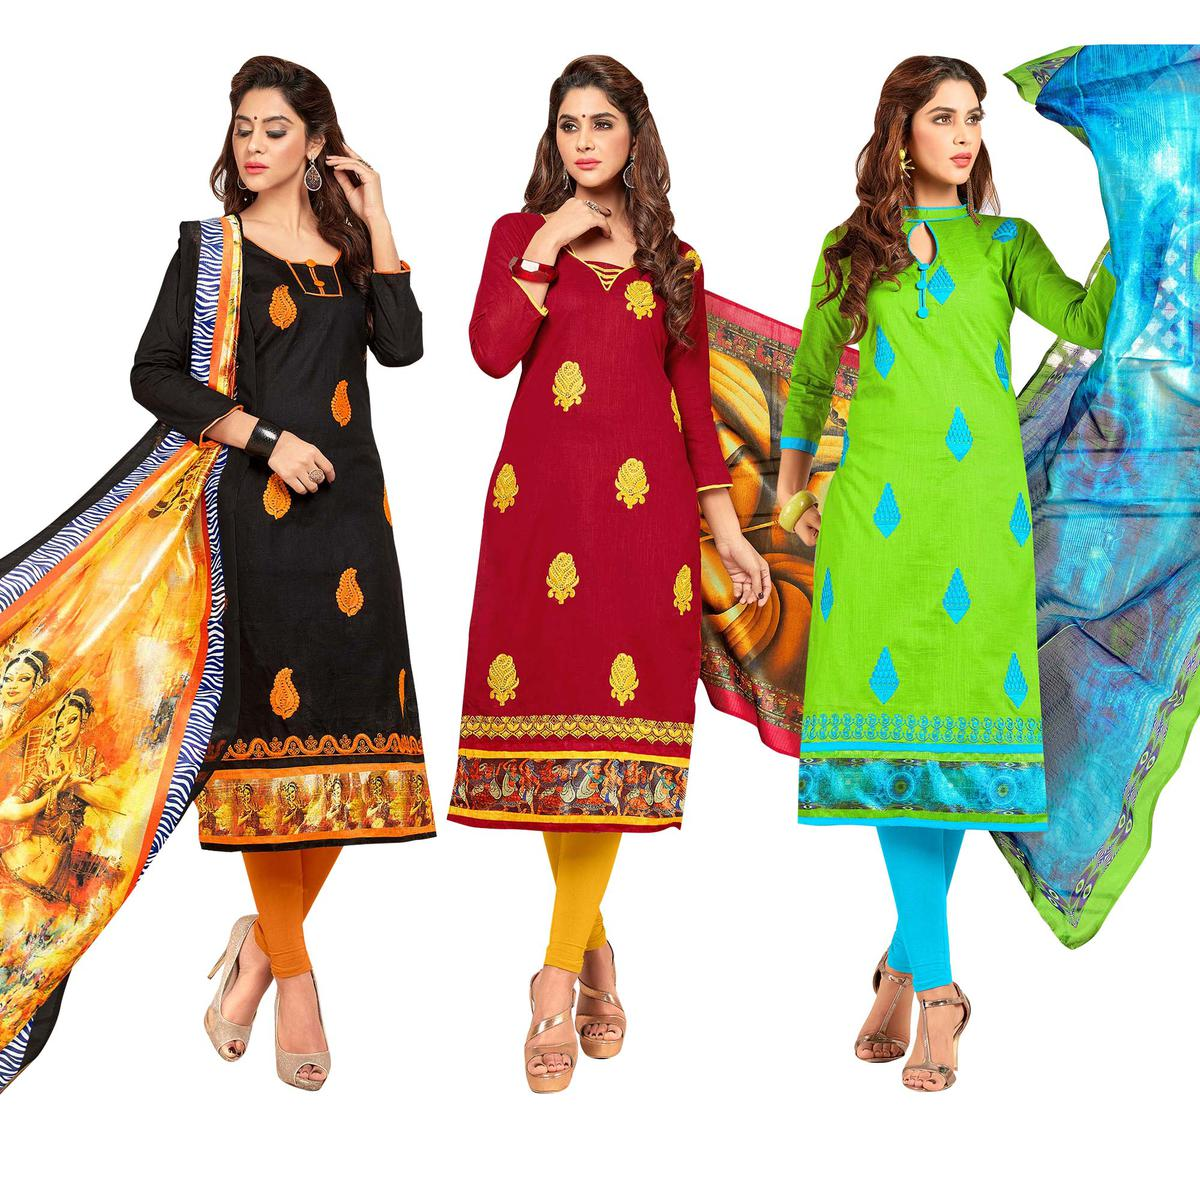 2dbe301798ad2 Buy Starring Partywear Embroidered Cotton Suit - Pack of 3 for womens  online India